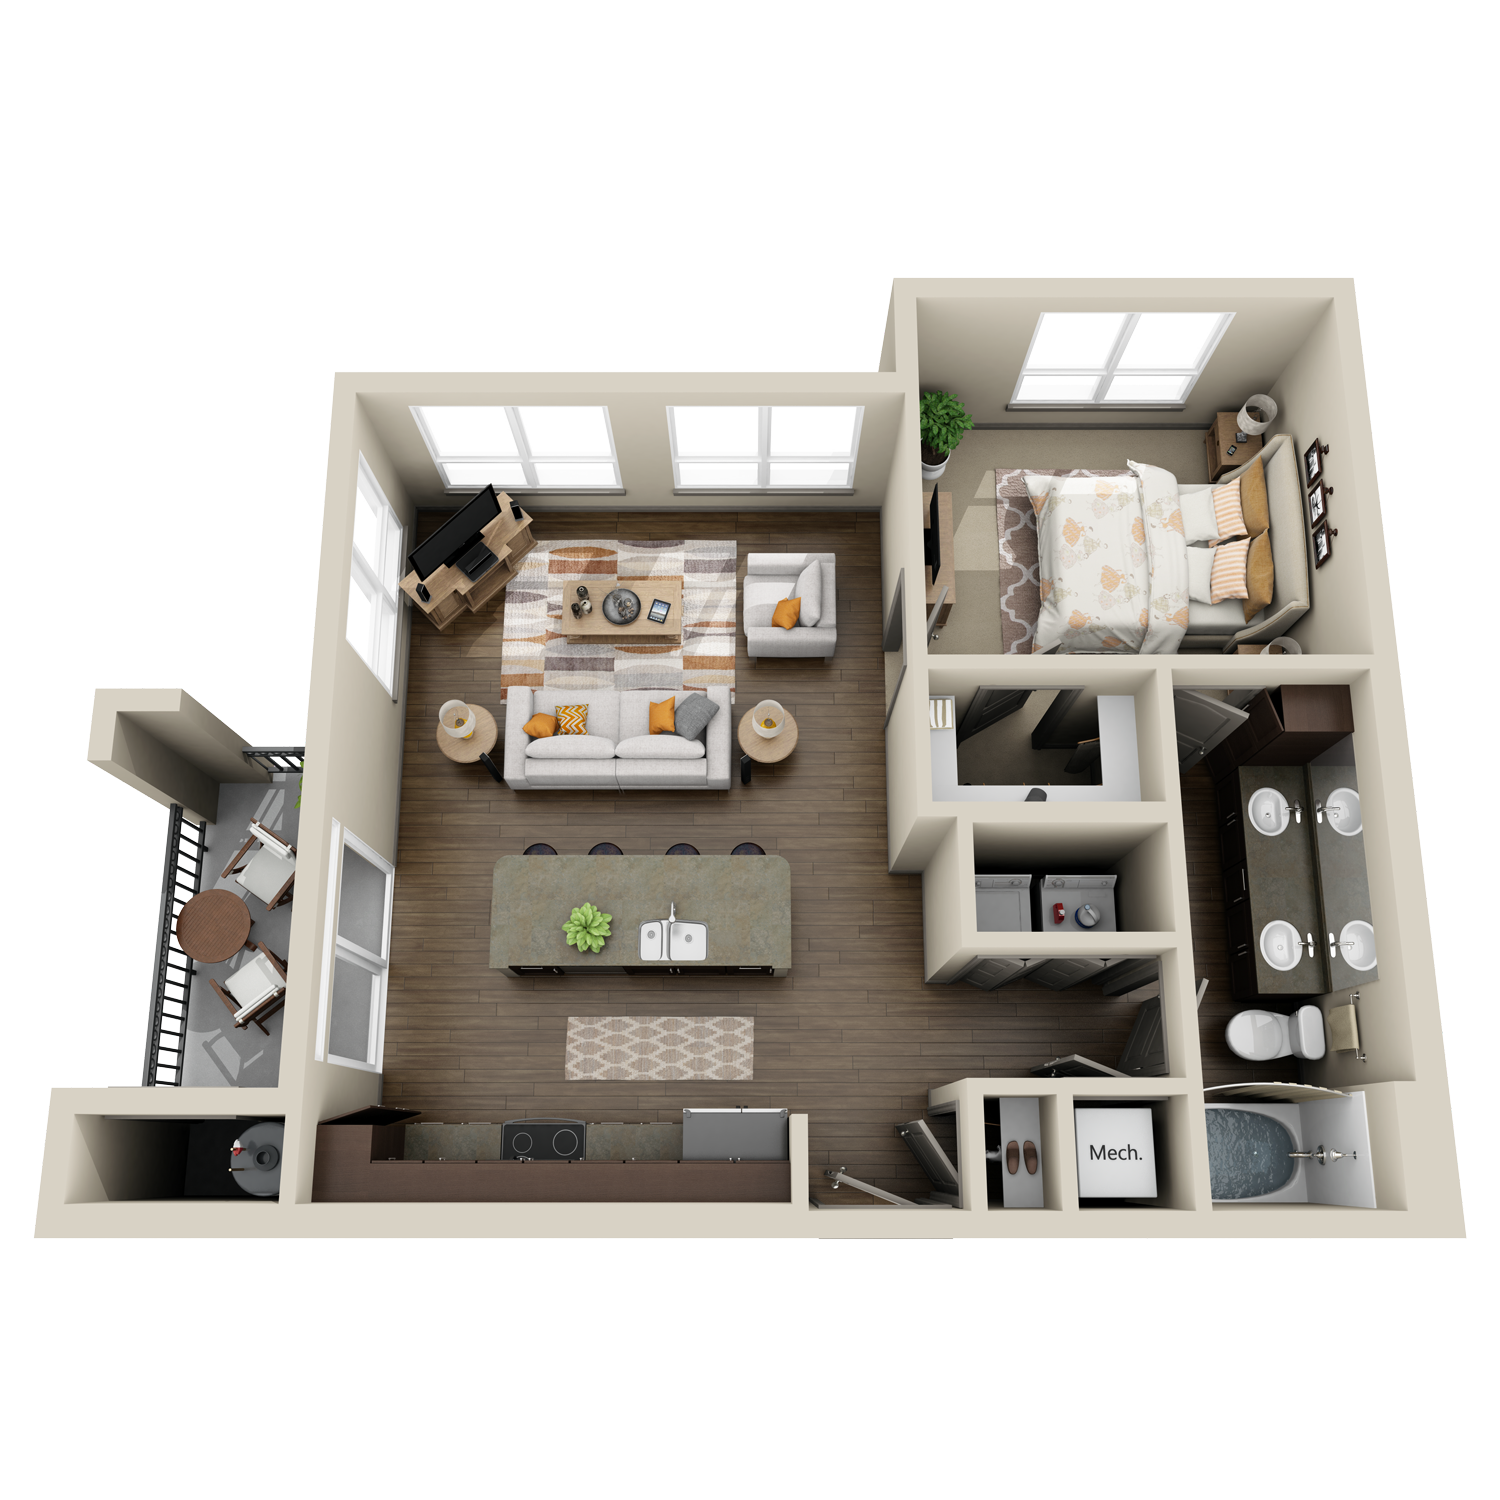 A4 floor plans featuring 1 bed and 1 bath